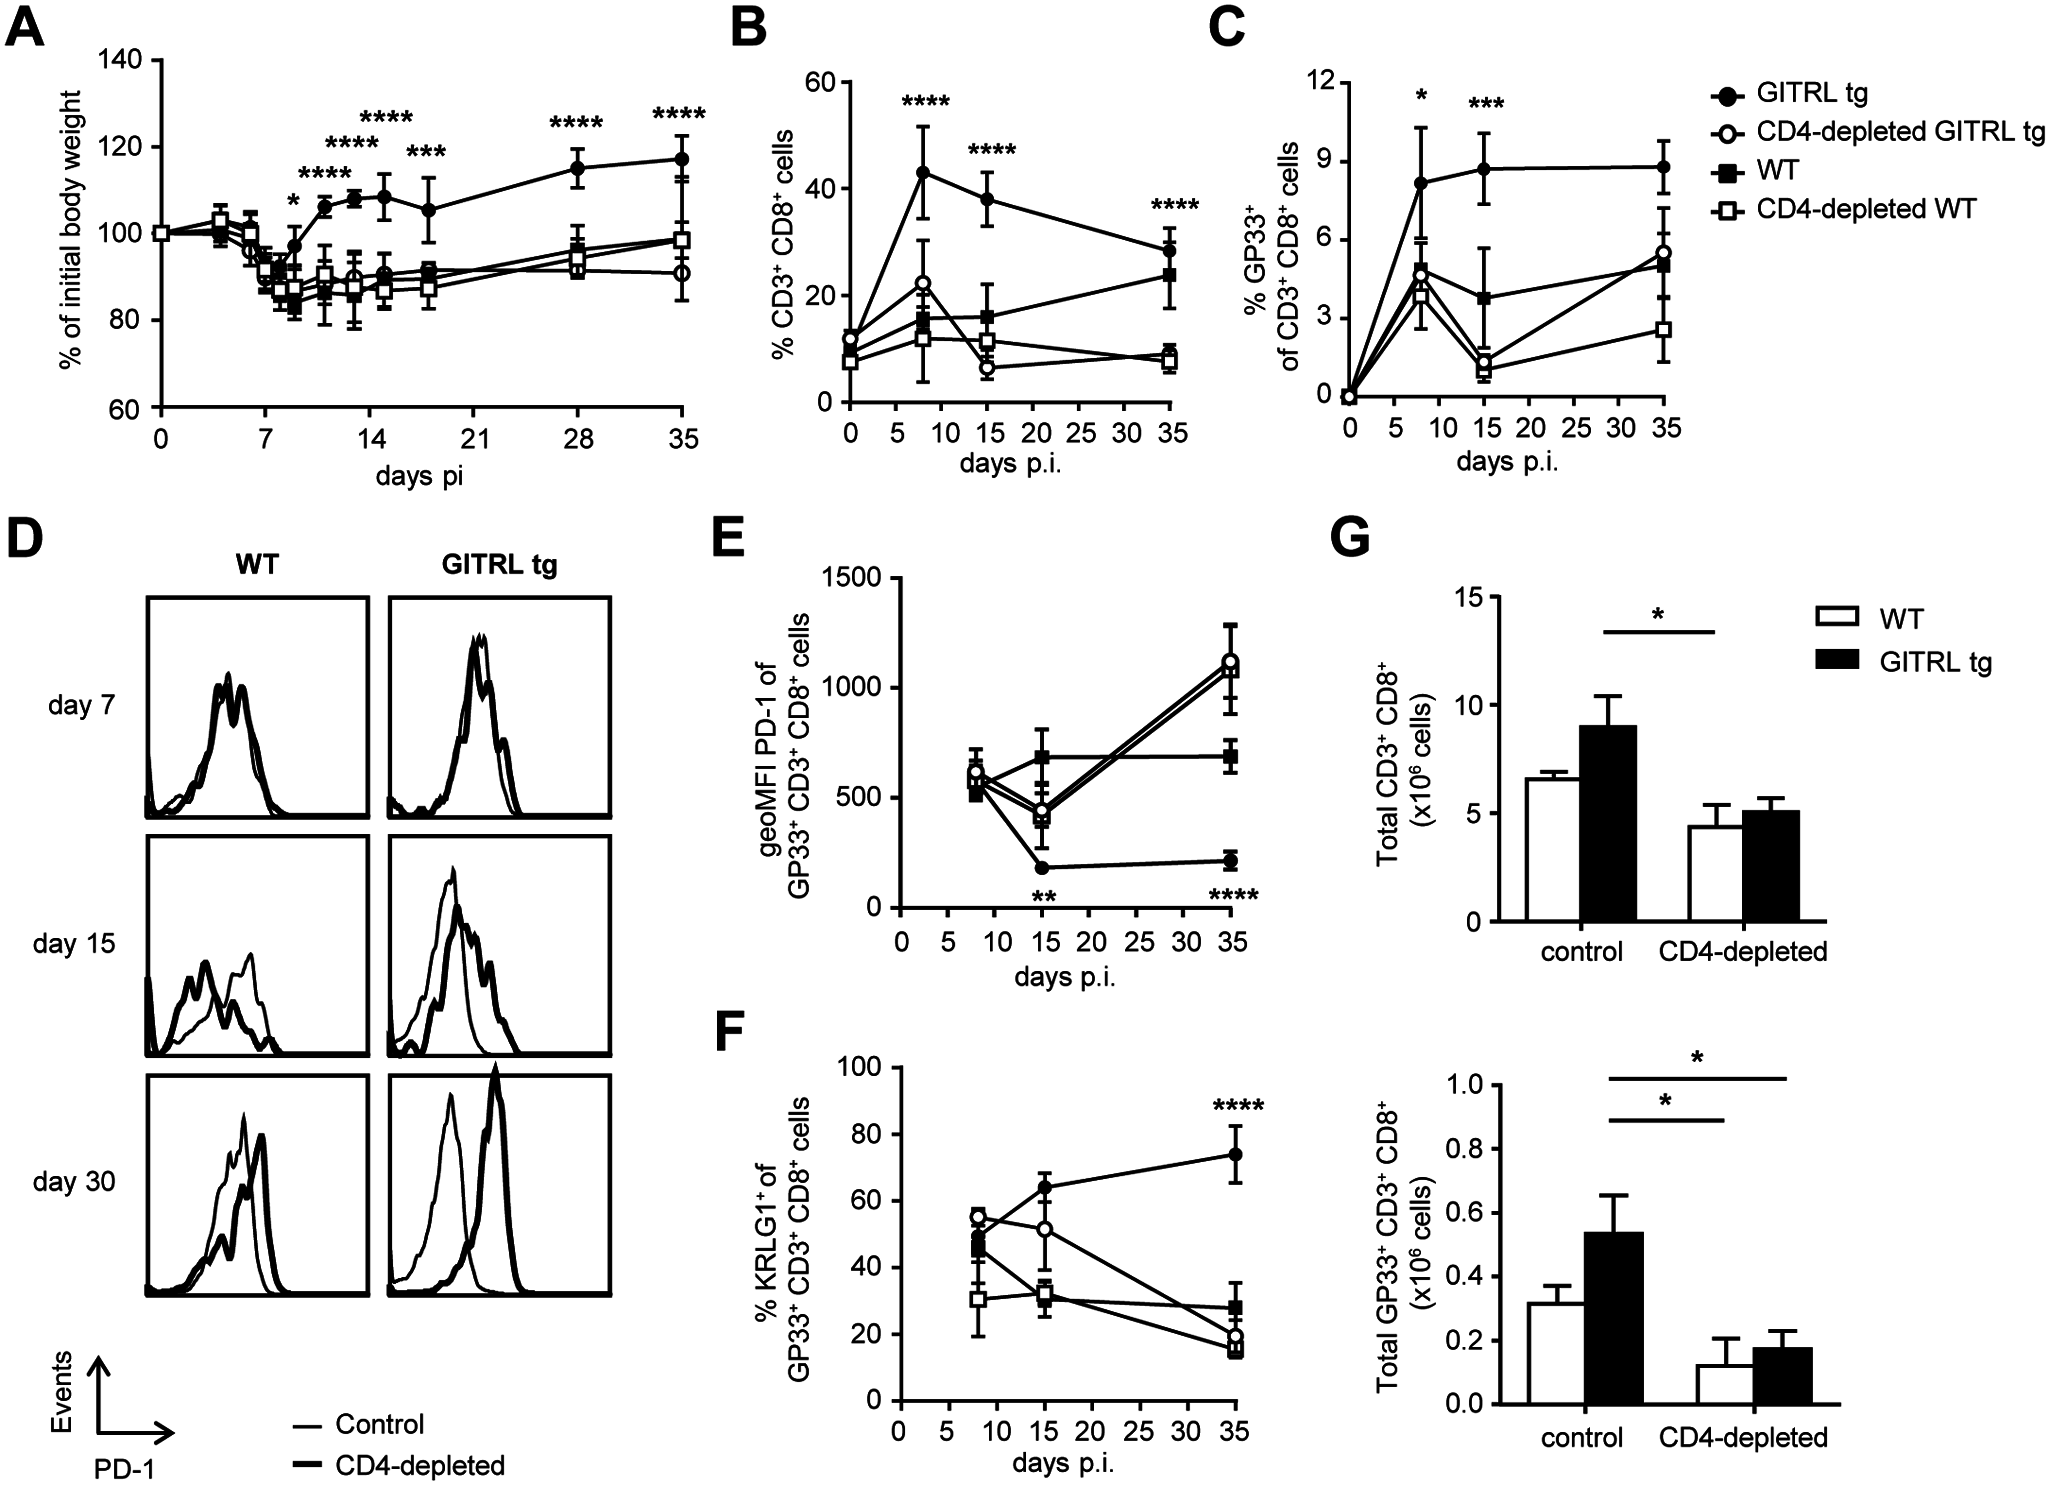 Protection and enhanced anti-viral CD8 T cell response in GITRL tg mice are CD4 T cell-dependent.